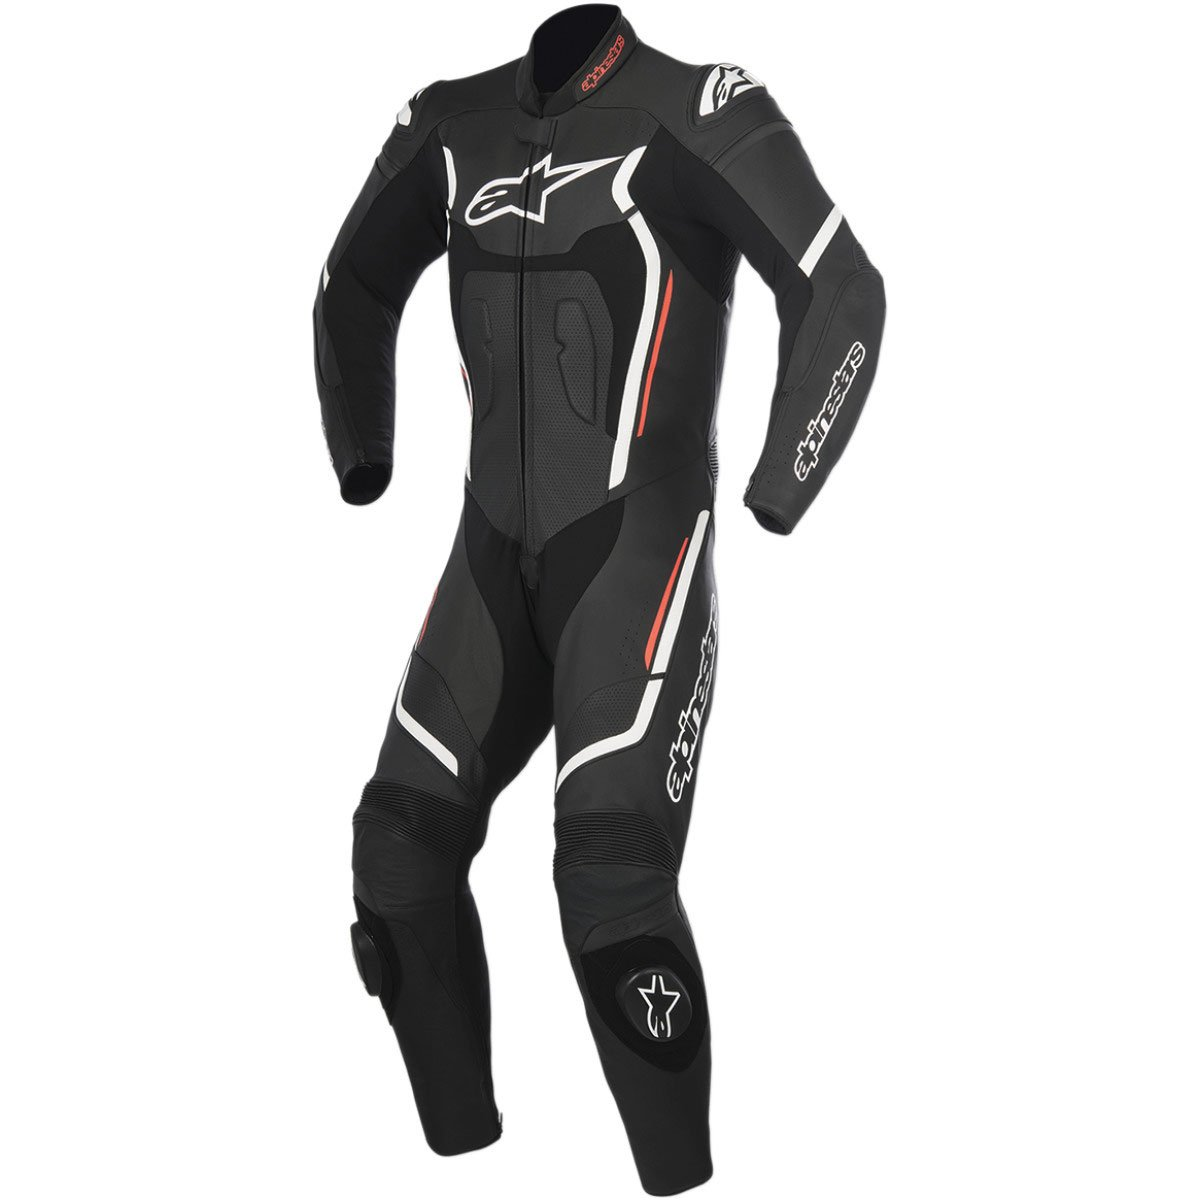 Alpinestars Montegi V2 Men's 1-Piece Street Motorcycle Race Suits - Black/White/Red / 56